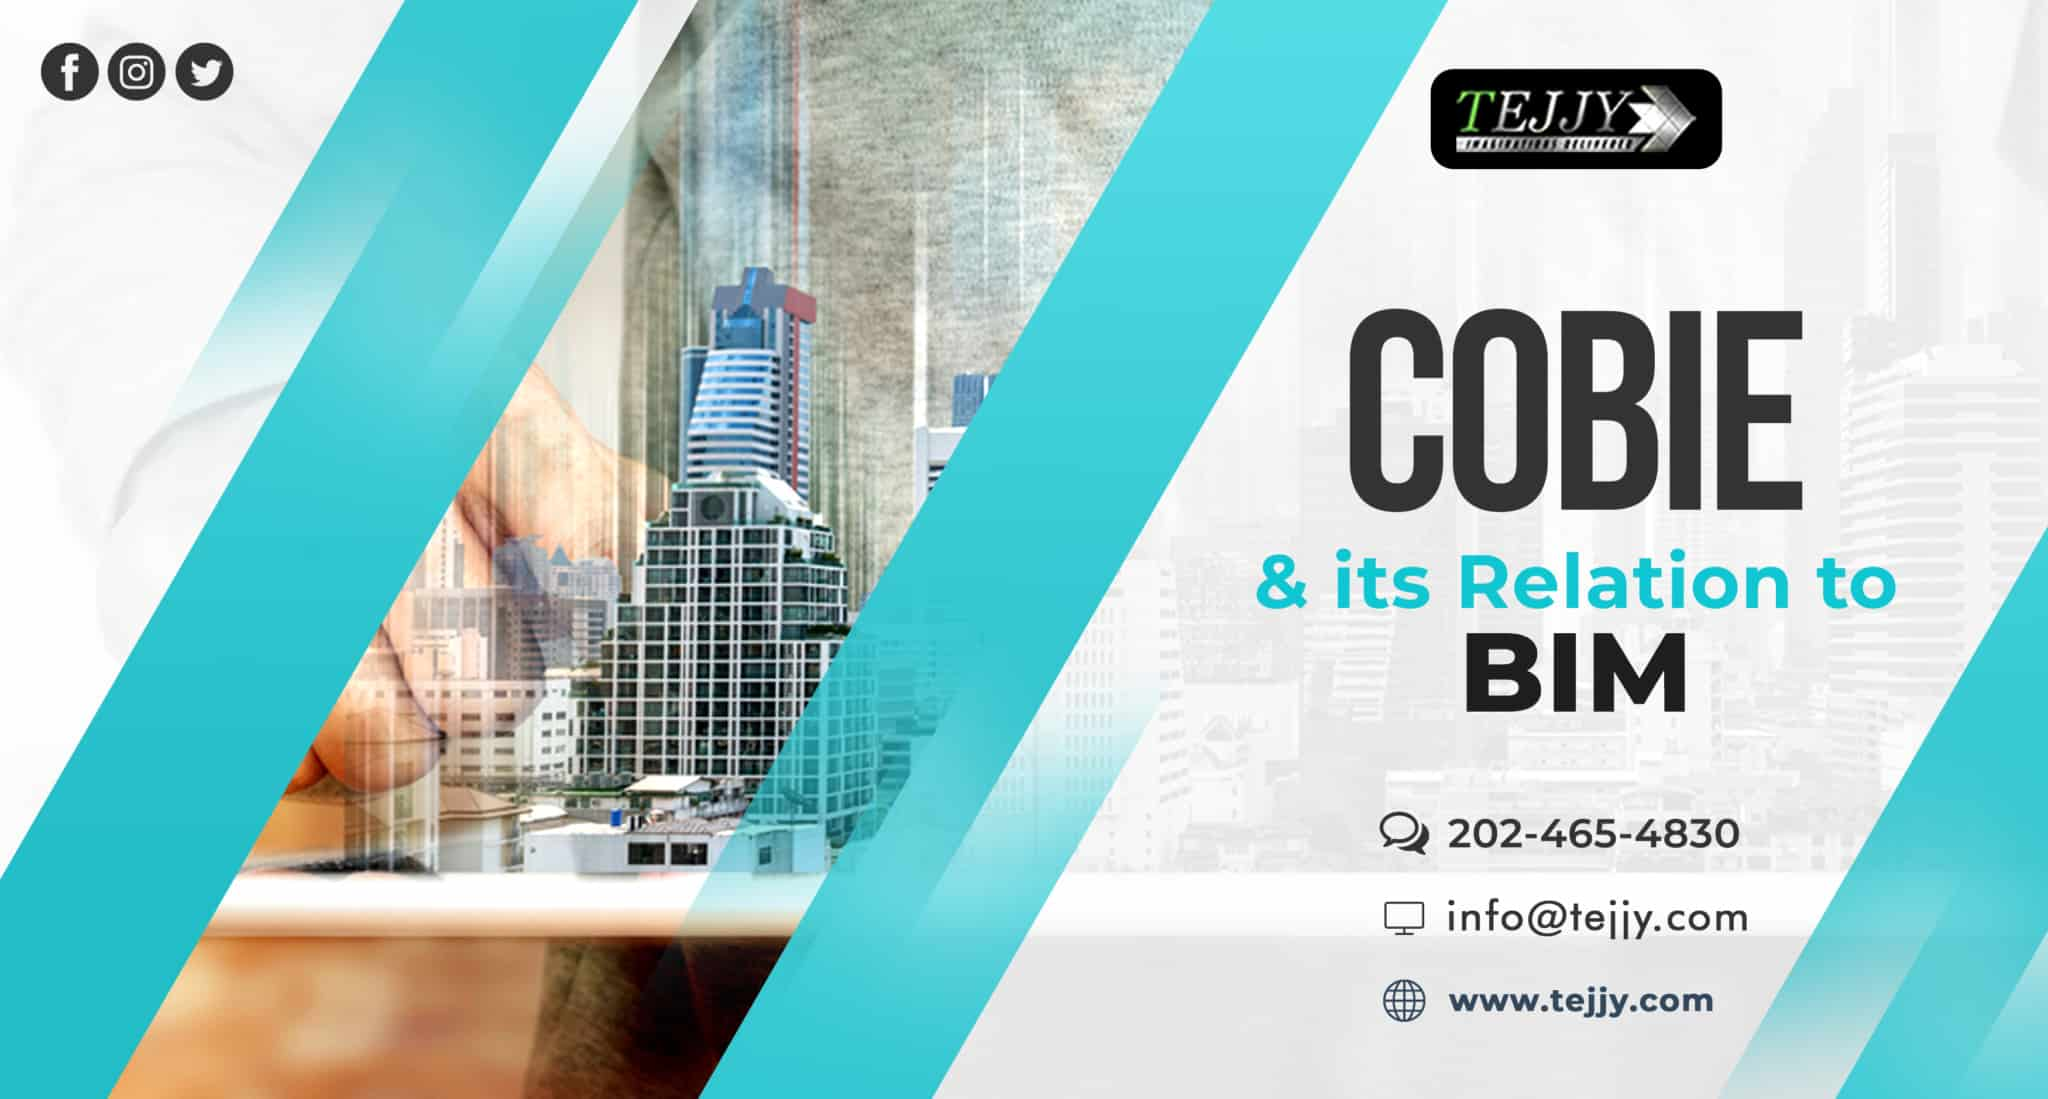 Tejjy Inc. COBie BIM services in usa